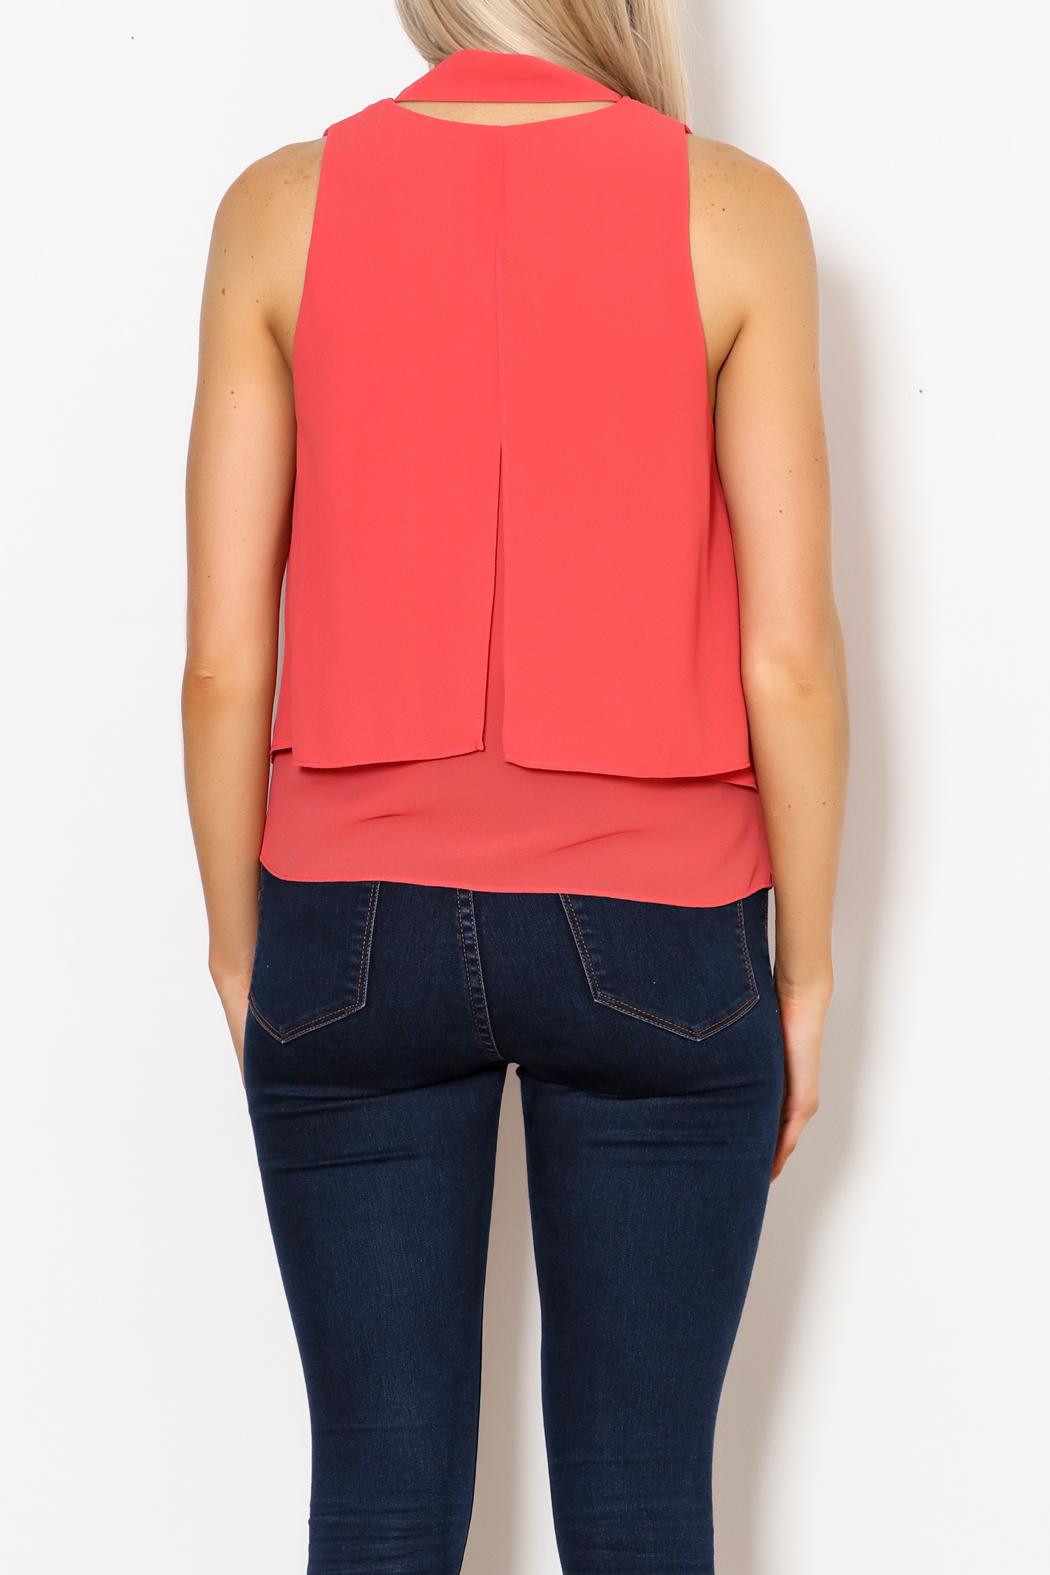 MICHEL Tie Front Blouse - Back Cropped Image